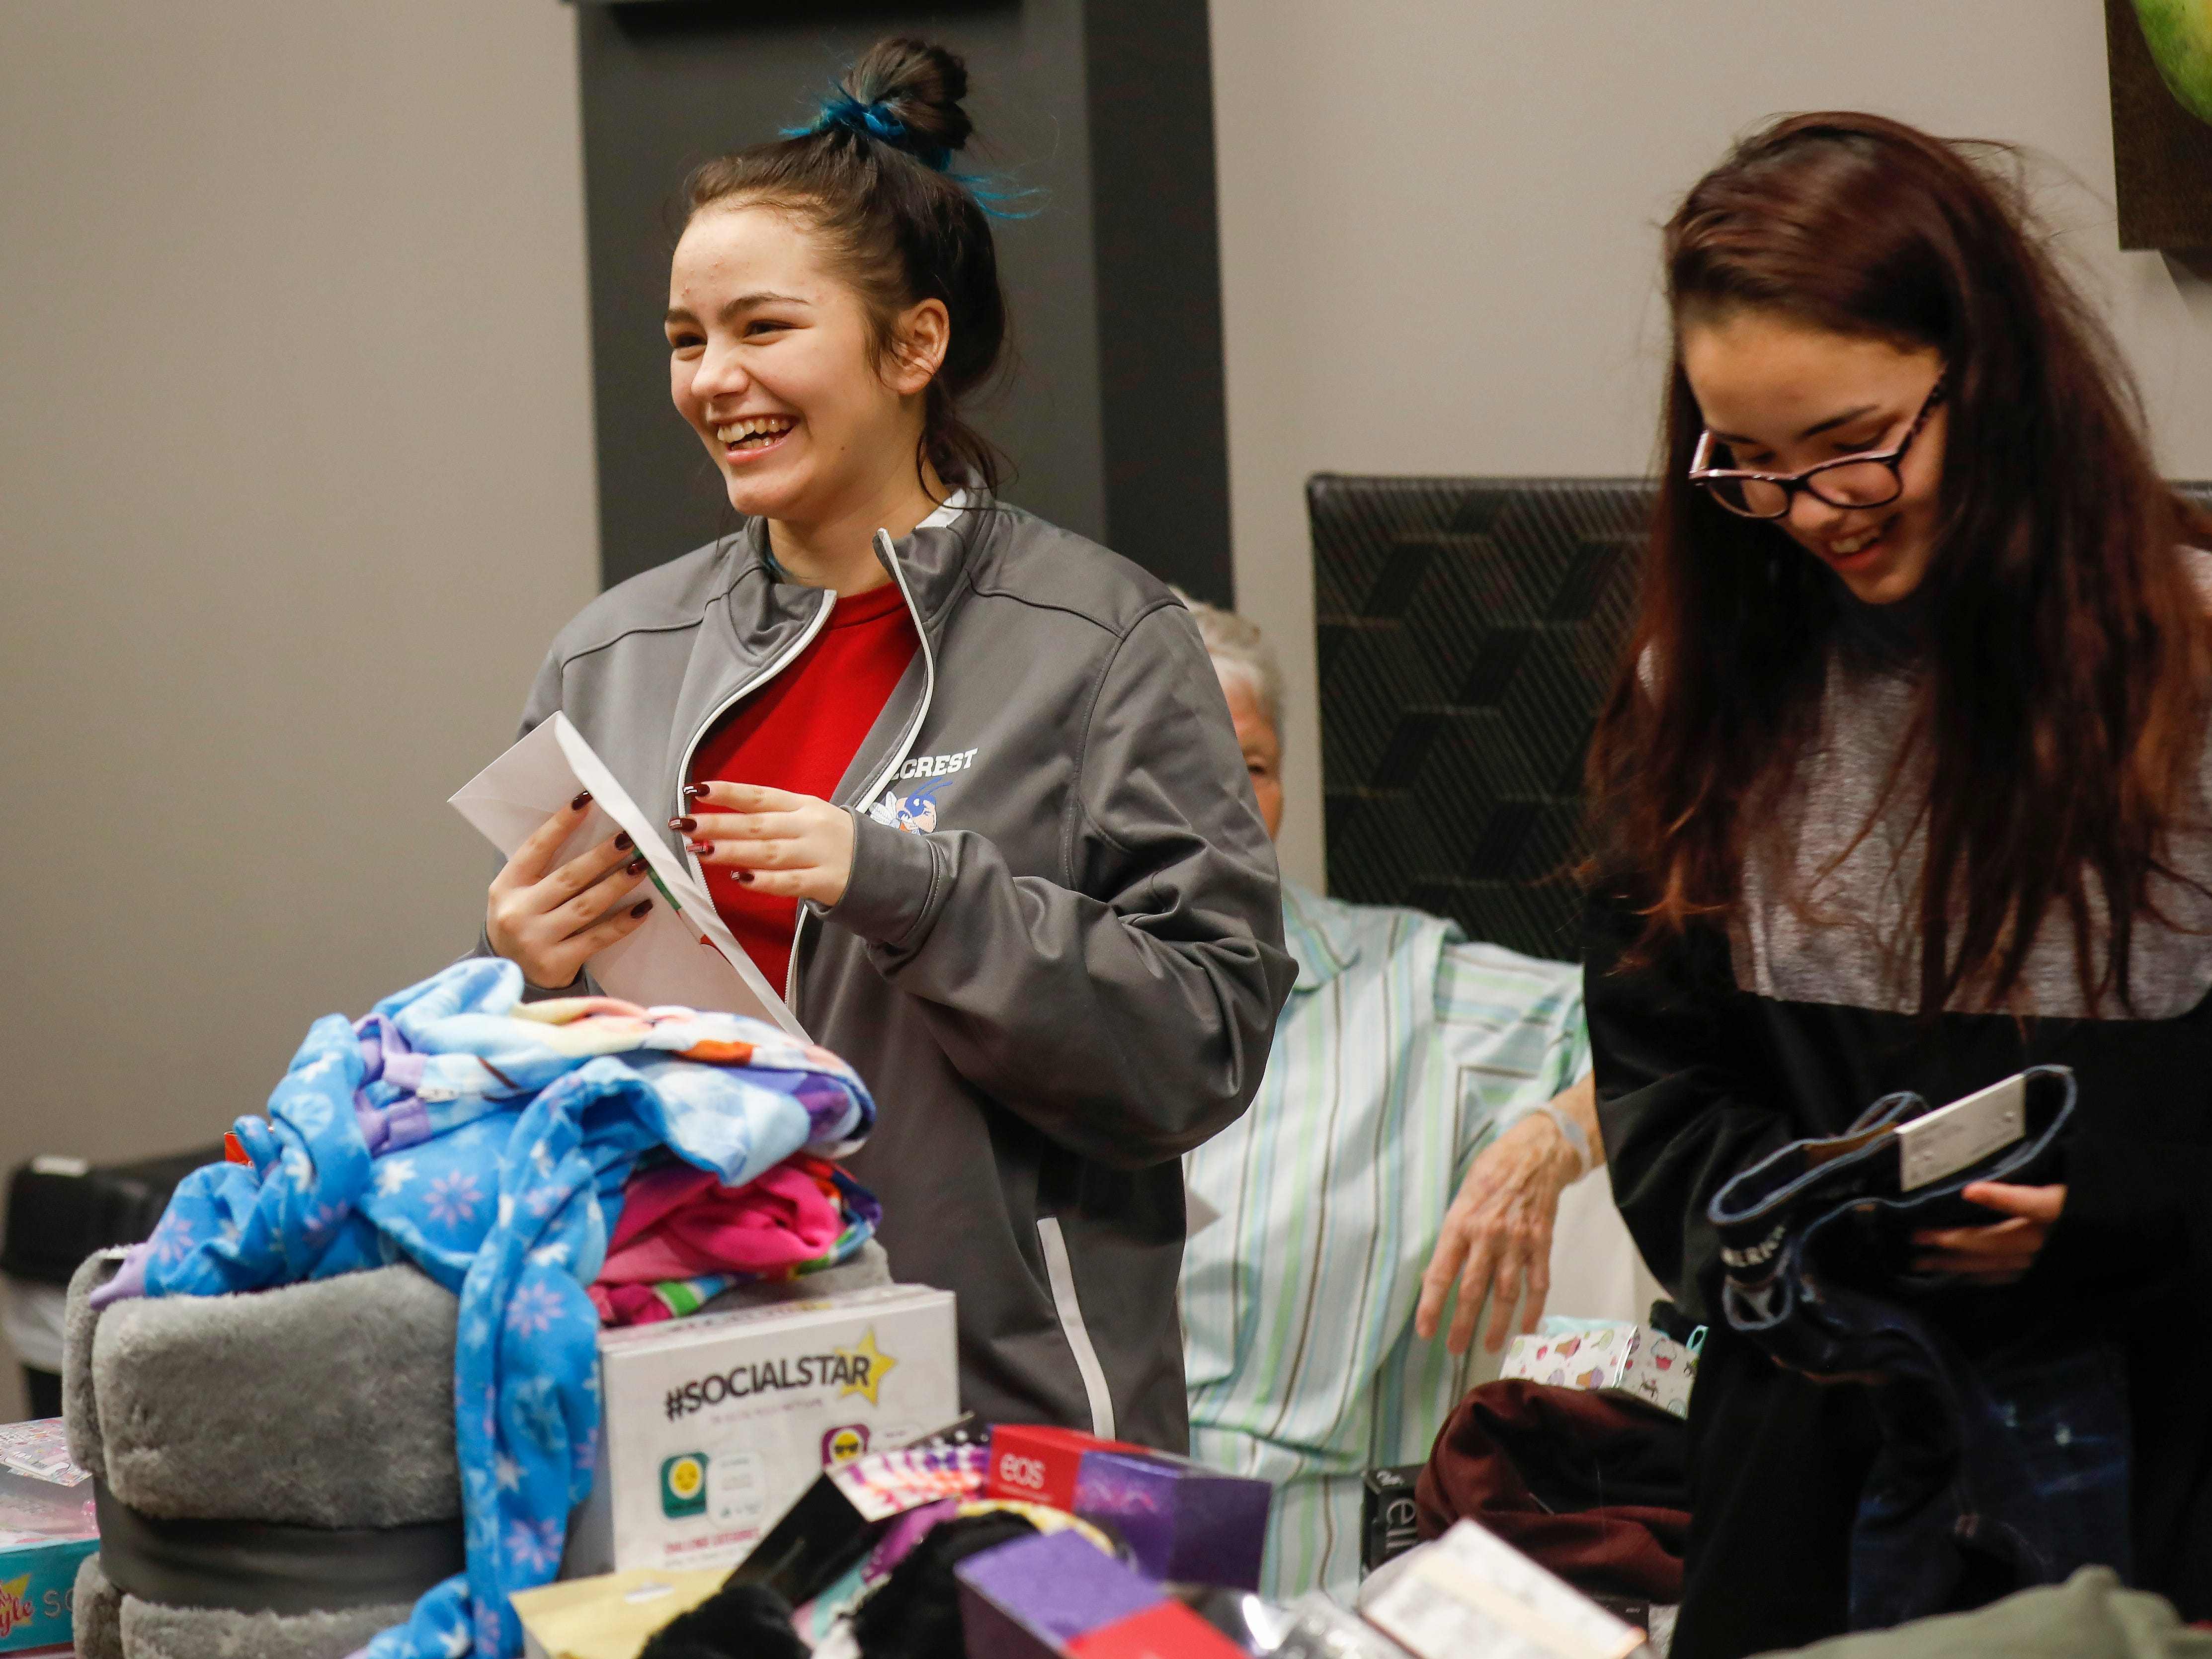 Callie Sahagun, left, and Abigail Sahagun laugh as they look through gifts that were given to them by employees of J.D. Byrider on Wednesday, Dec. 19, 2018. The Sahaguns' grandmother, Barbara Foster, was killed during a road rage incident on Nov. 20.